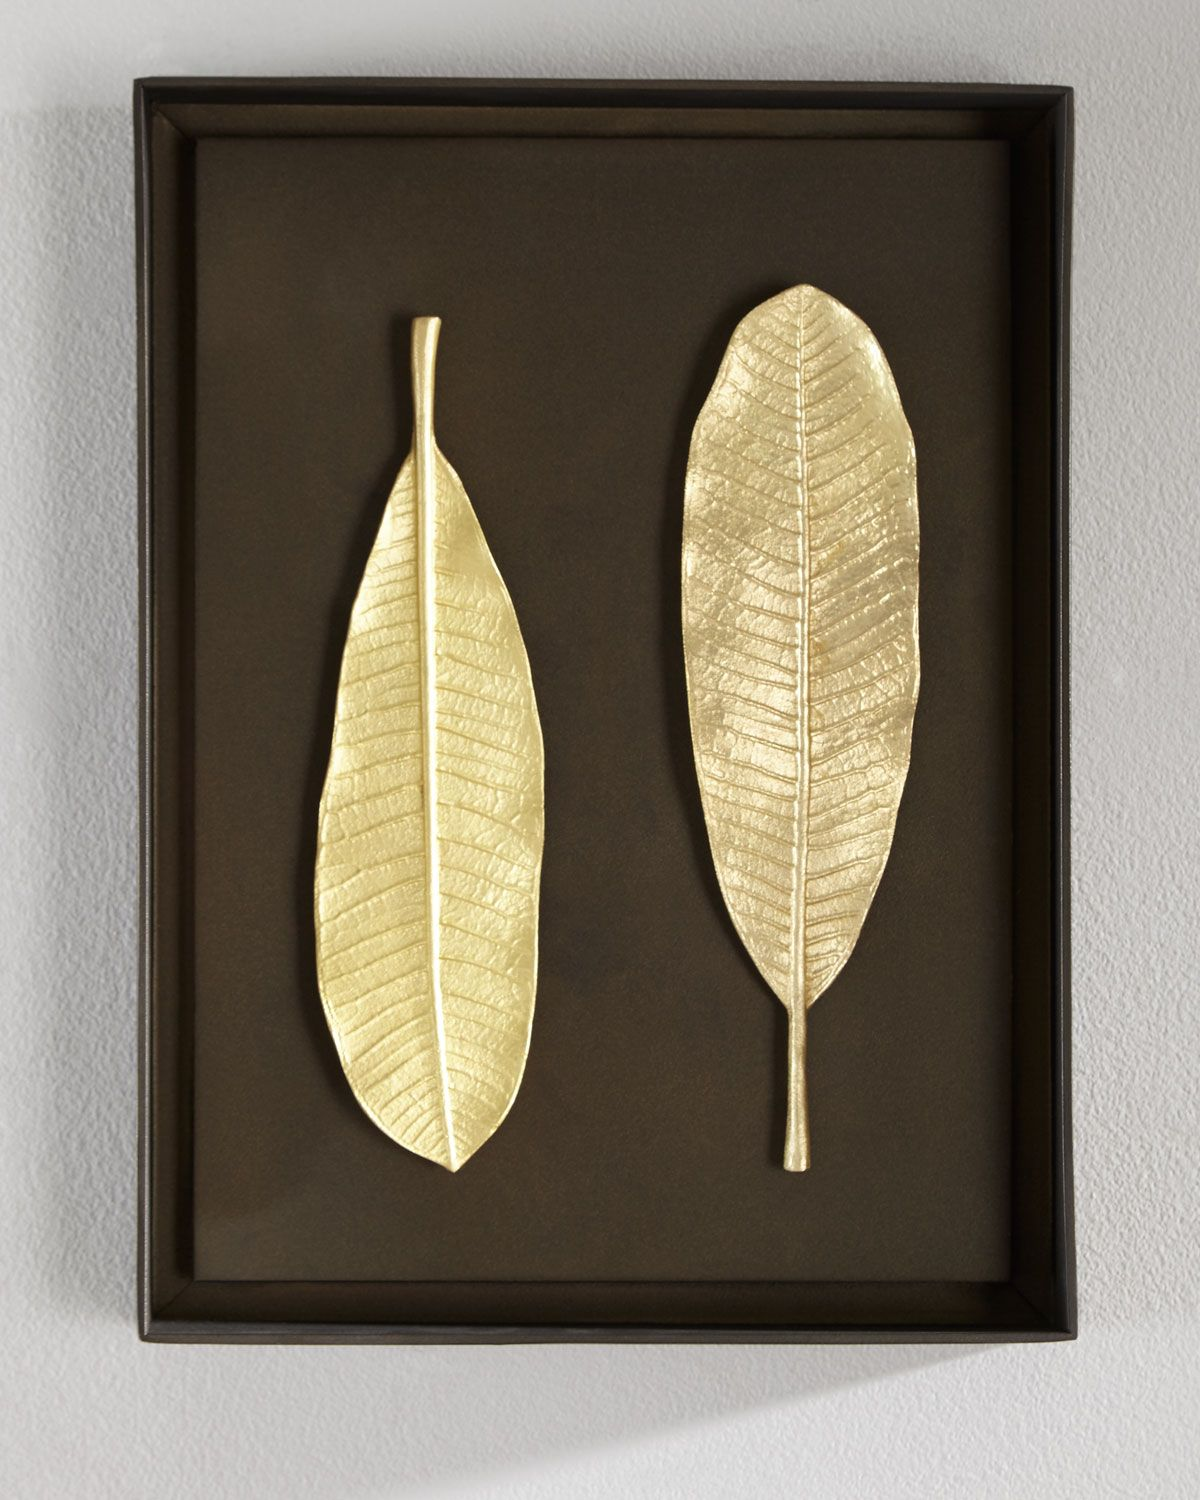 Champa Leaf Wall Art | Leaf wall art, Walls and Hanging frames